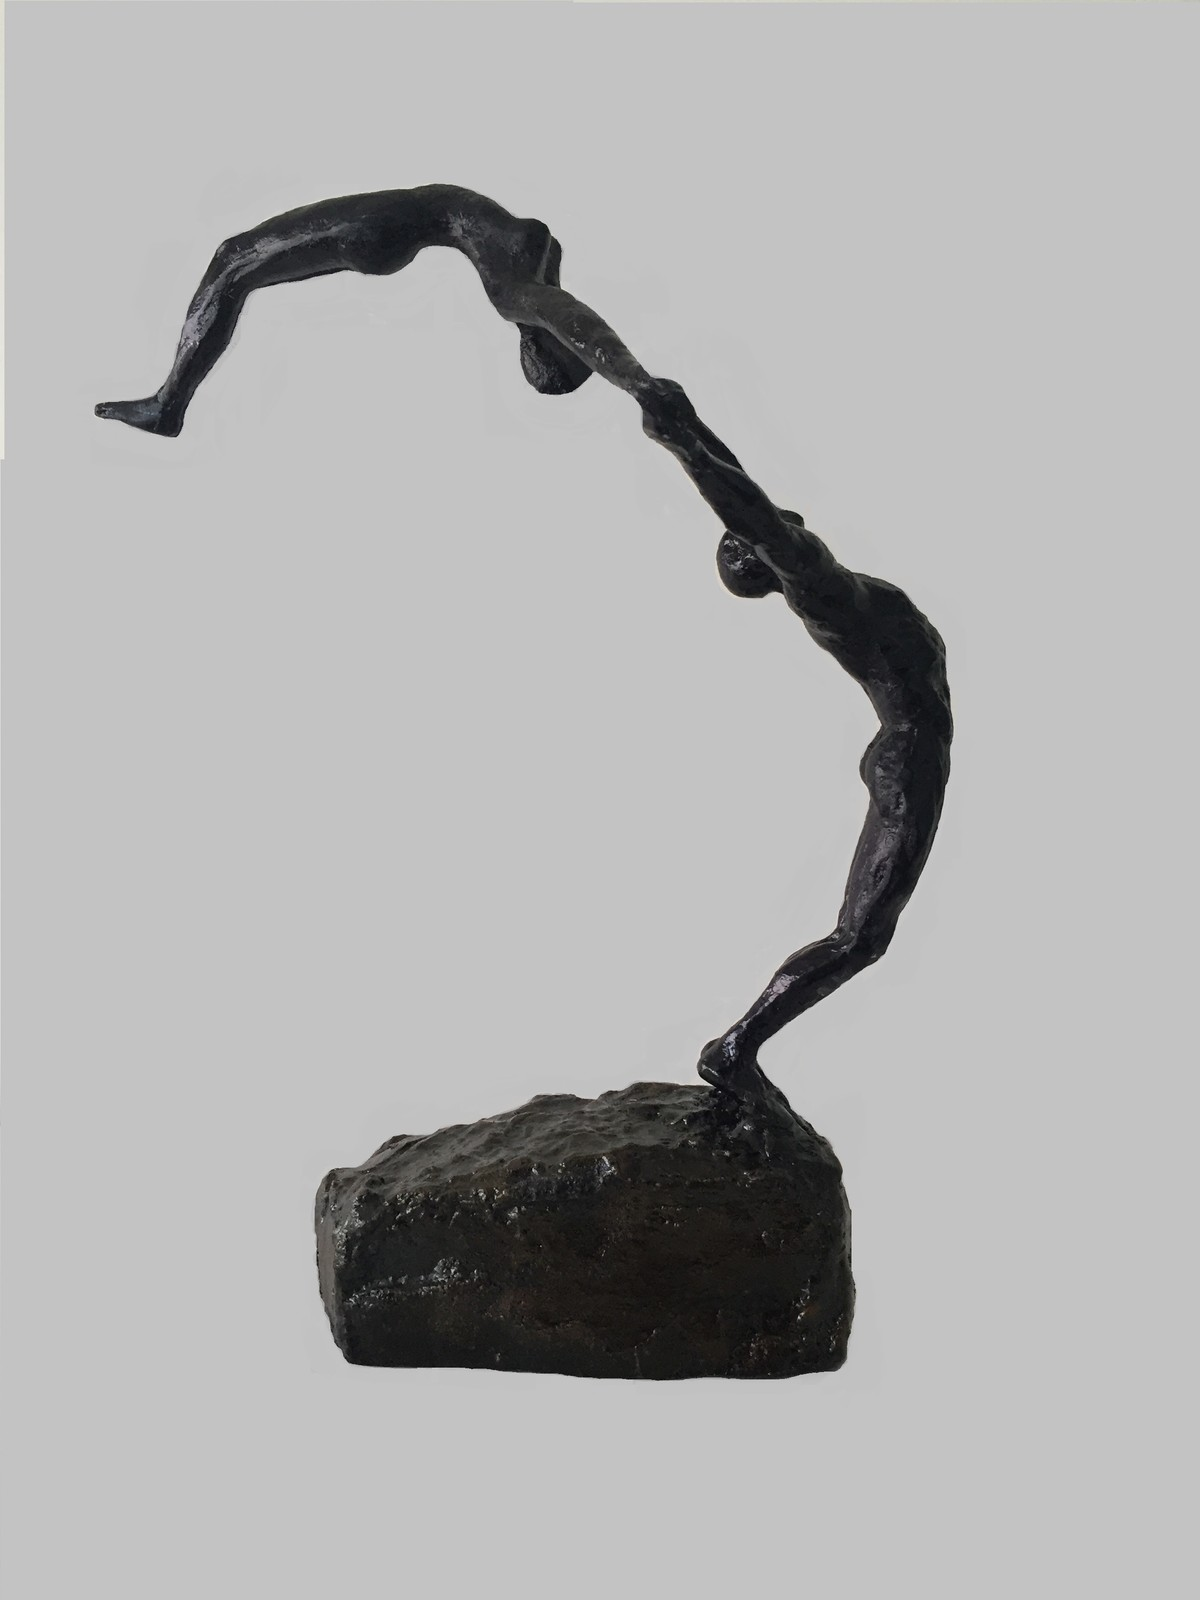 Gymnasts (metal base) by Vernika, Abstract Sculpture | 3D, Metal, Cyan color